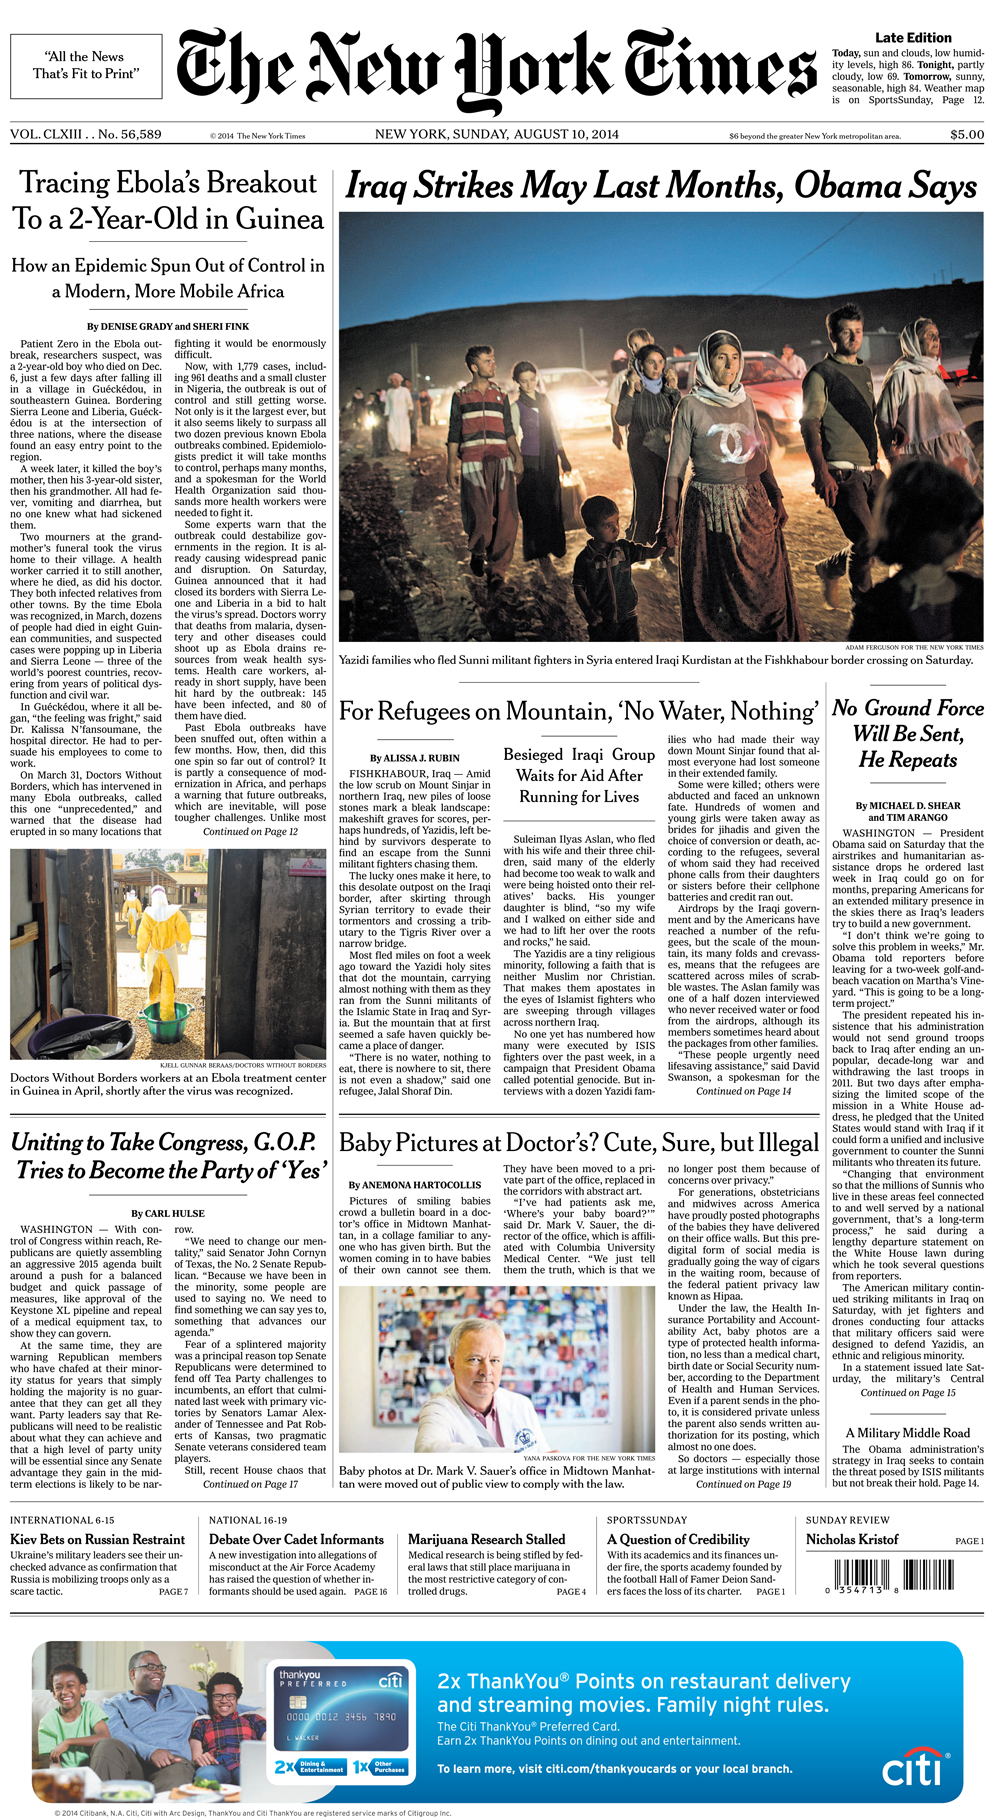 The New York Times front page(photo on bottom center)